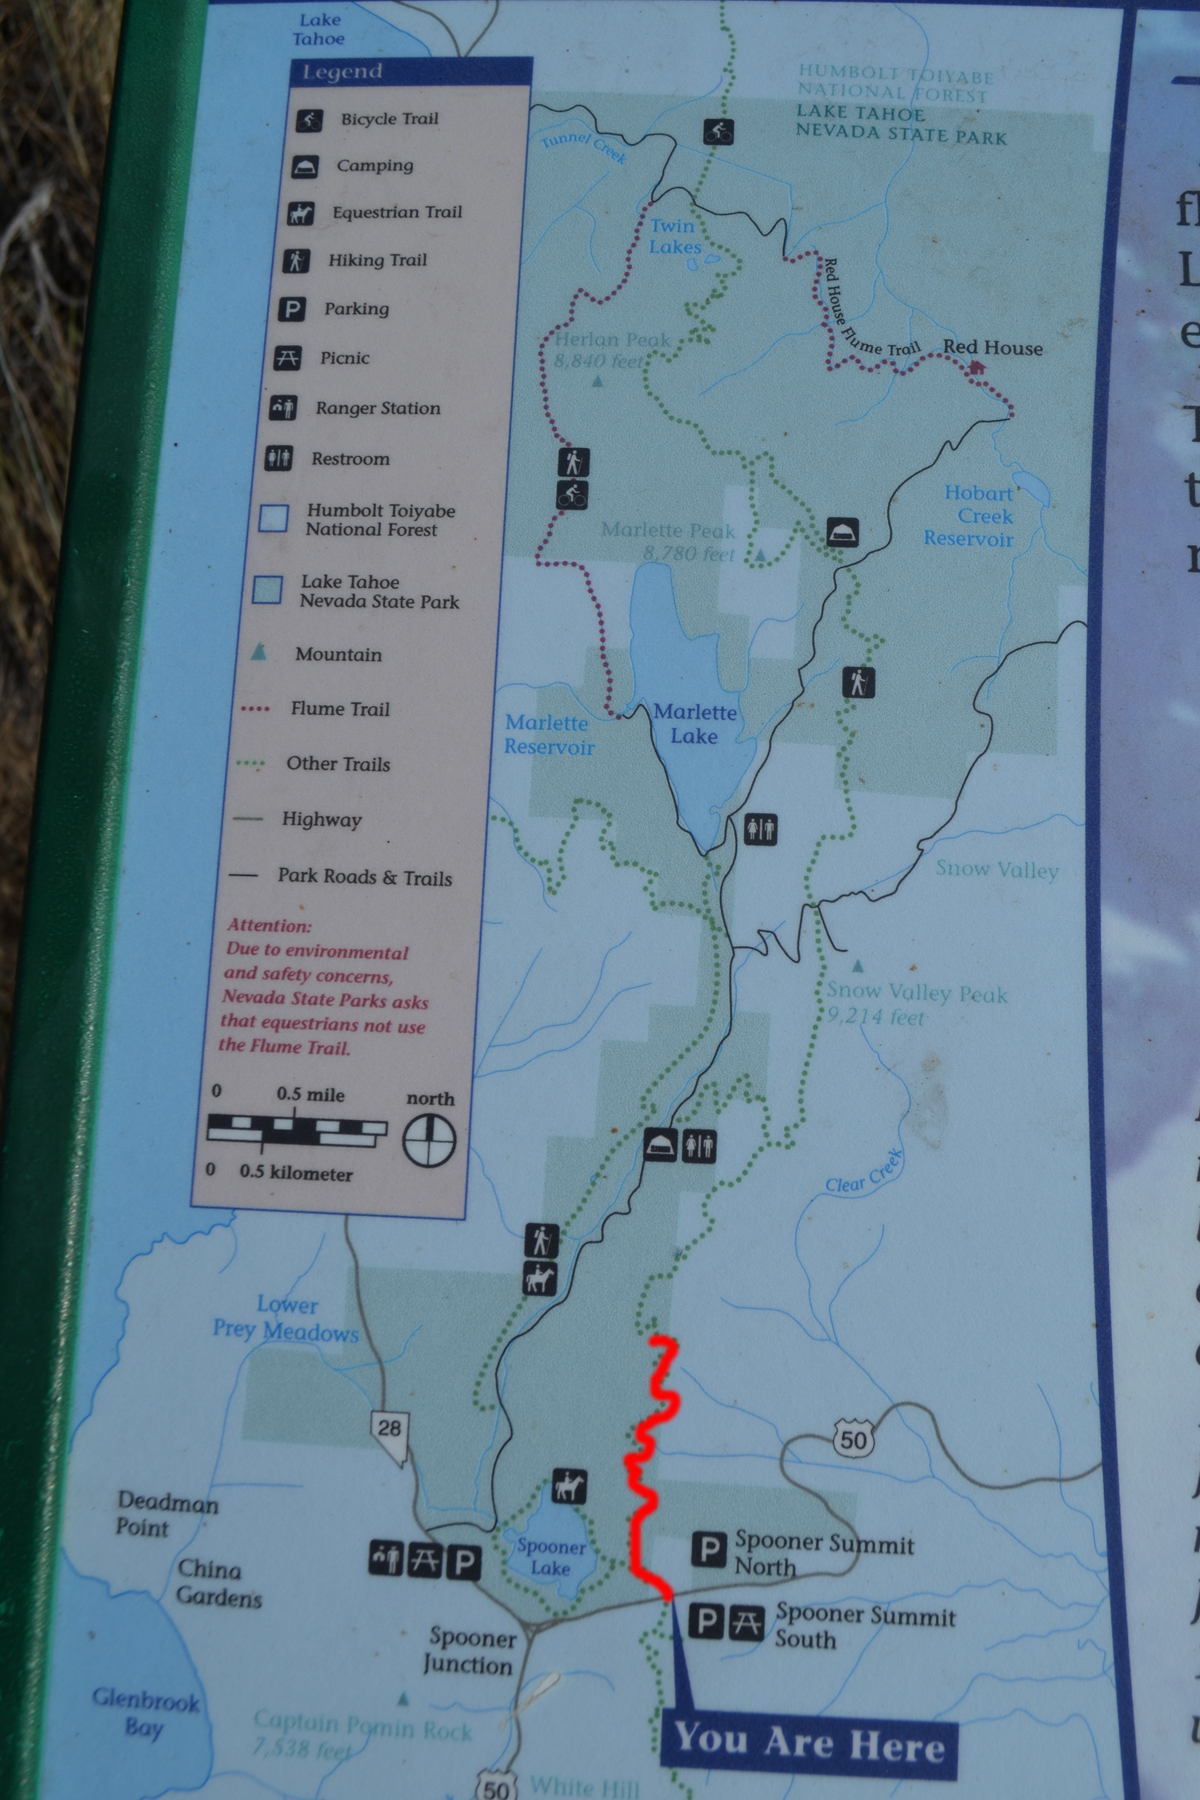 marlette lake trail map with Spooner Lake Vistatrta Challenge 5 on Nevada Tunnel Creek And Marlette Lake together with Trailsbyregion further A View That Could Never Get Old additionally Spooner Lake Vistatrta Challenge 5 also Marlette Lake Trail Tahoe.